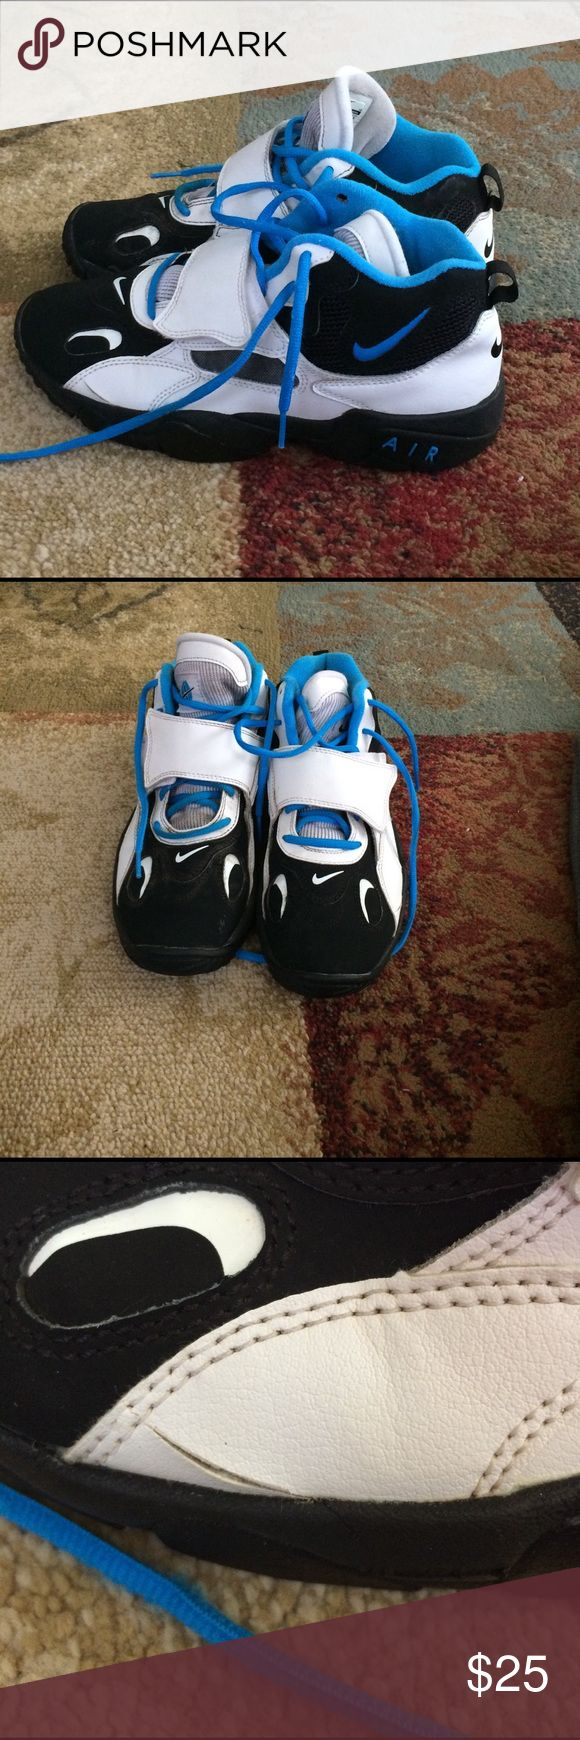 Boy's Nike Air shoes size 7Y Boy's Nike Air shoes size 7Y. In good used condition. Has a slit on one side as shown in picture. Some minor spots. Slight worn as you can tell from bottoms of shoes. Blue,black, and white in color. Nike Shoes Sneakers